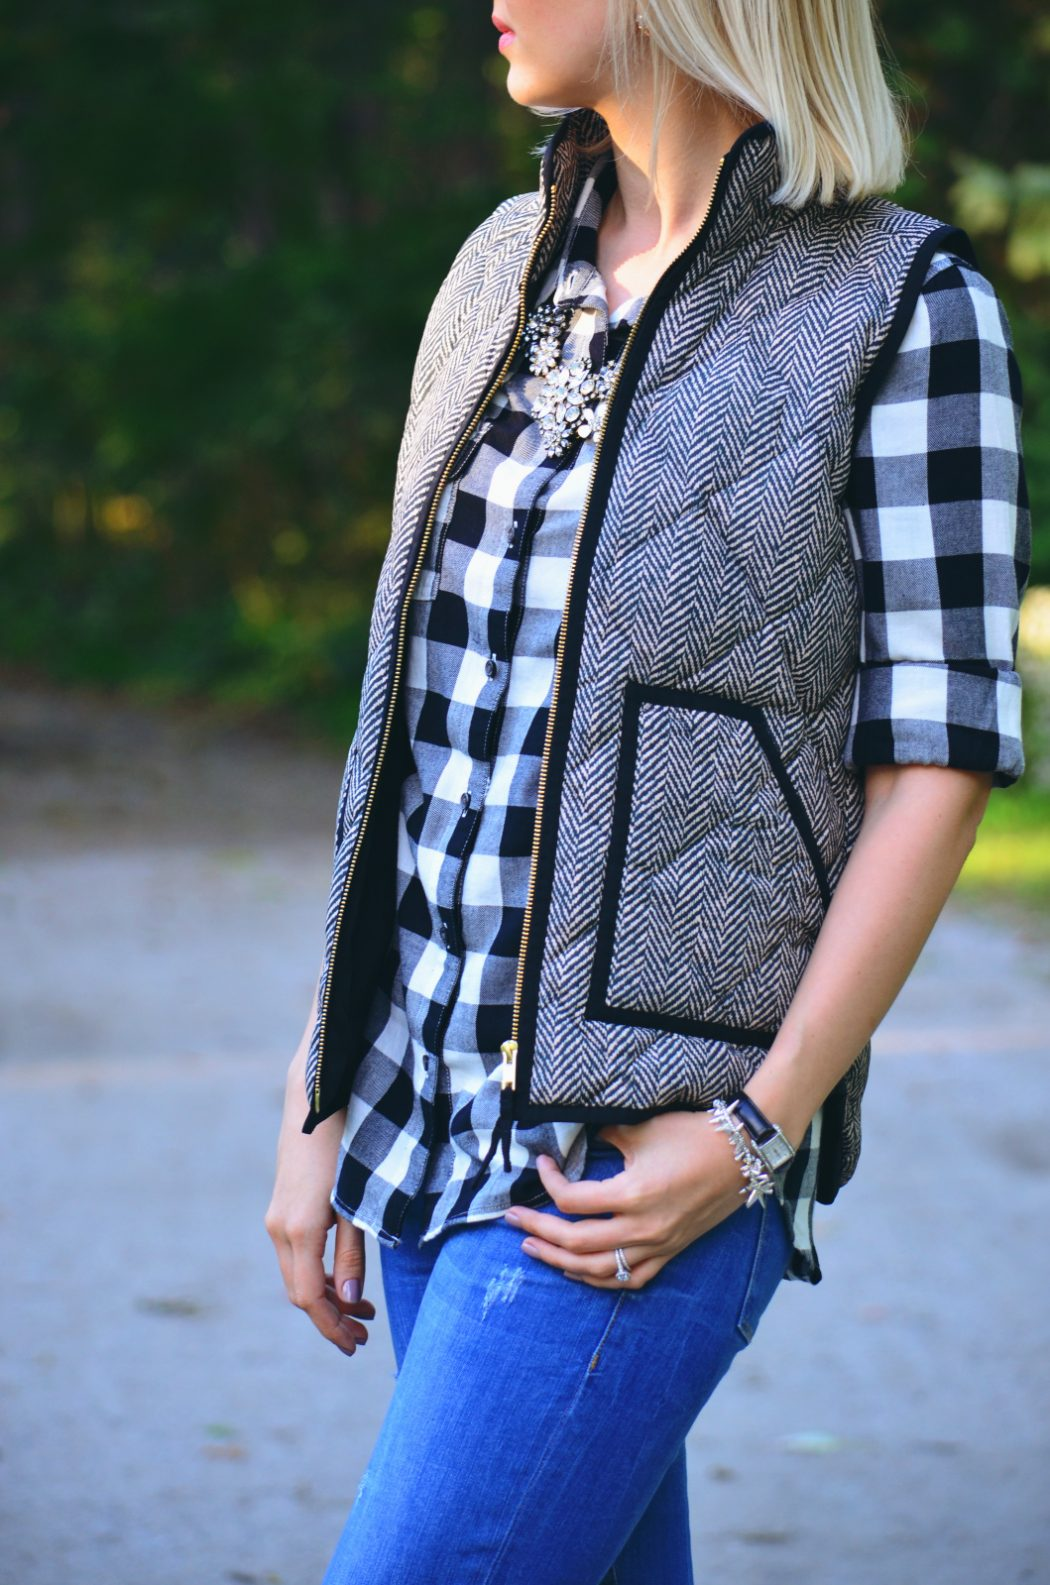 Puffy-vest3 8 Main Winter & Fall Jackets & Coats Trends in 2018